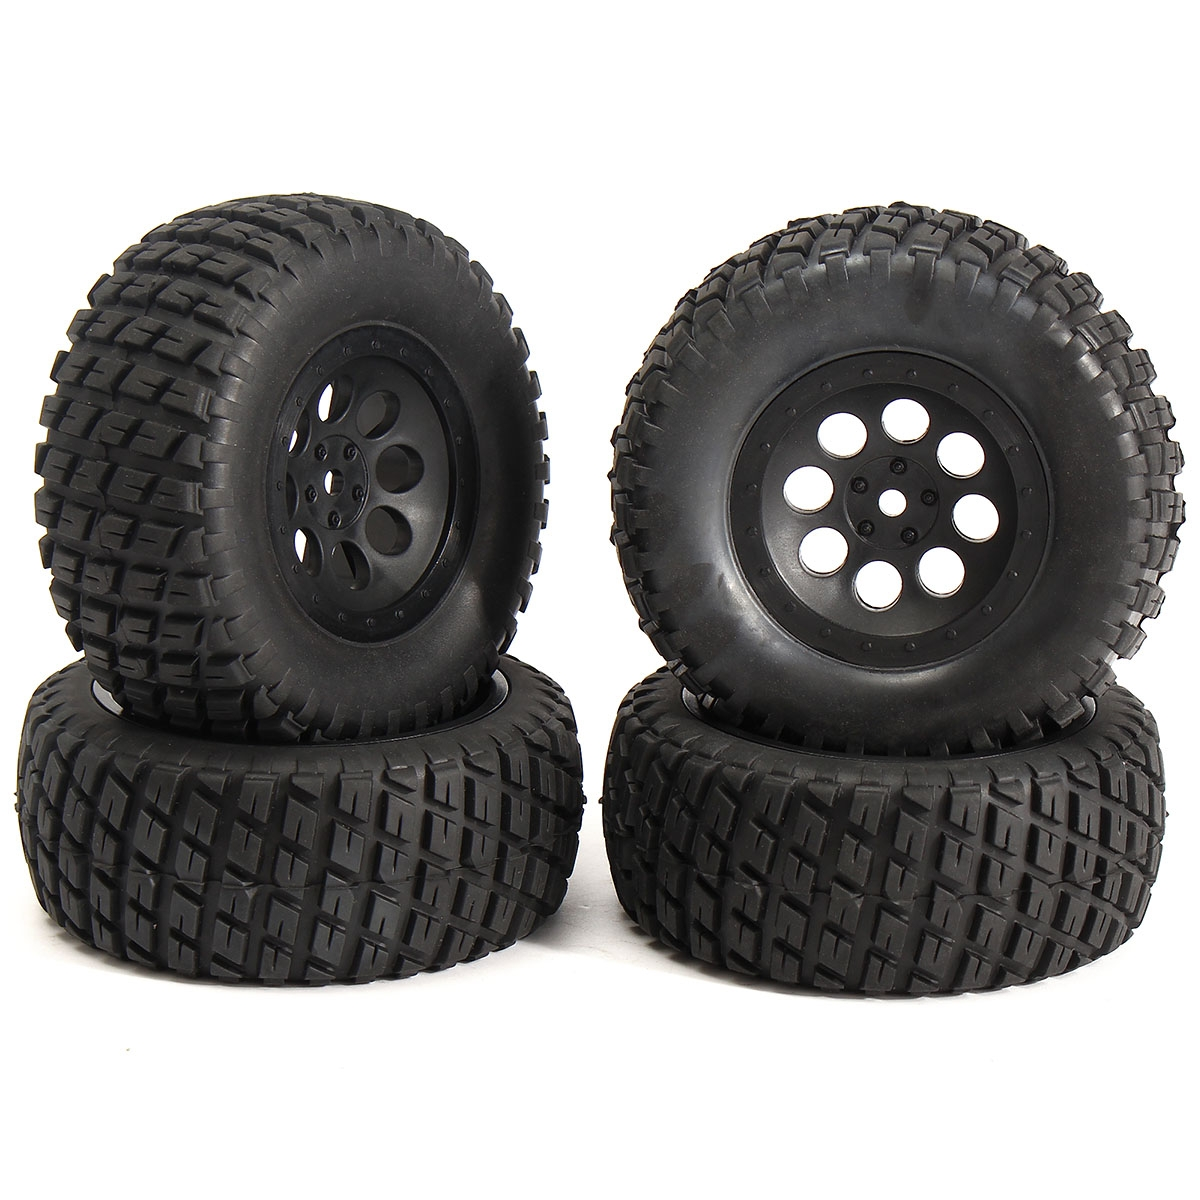 4PCS 1/10 Tires Set Tyre Short Course Truck Wheel Rim For TRAXXAS SlASH HPI RC Car Part